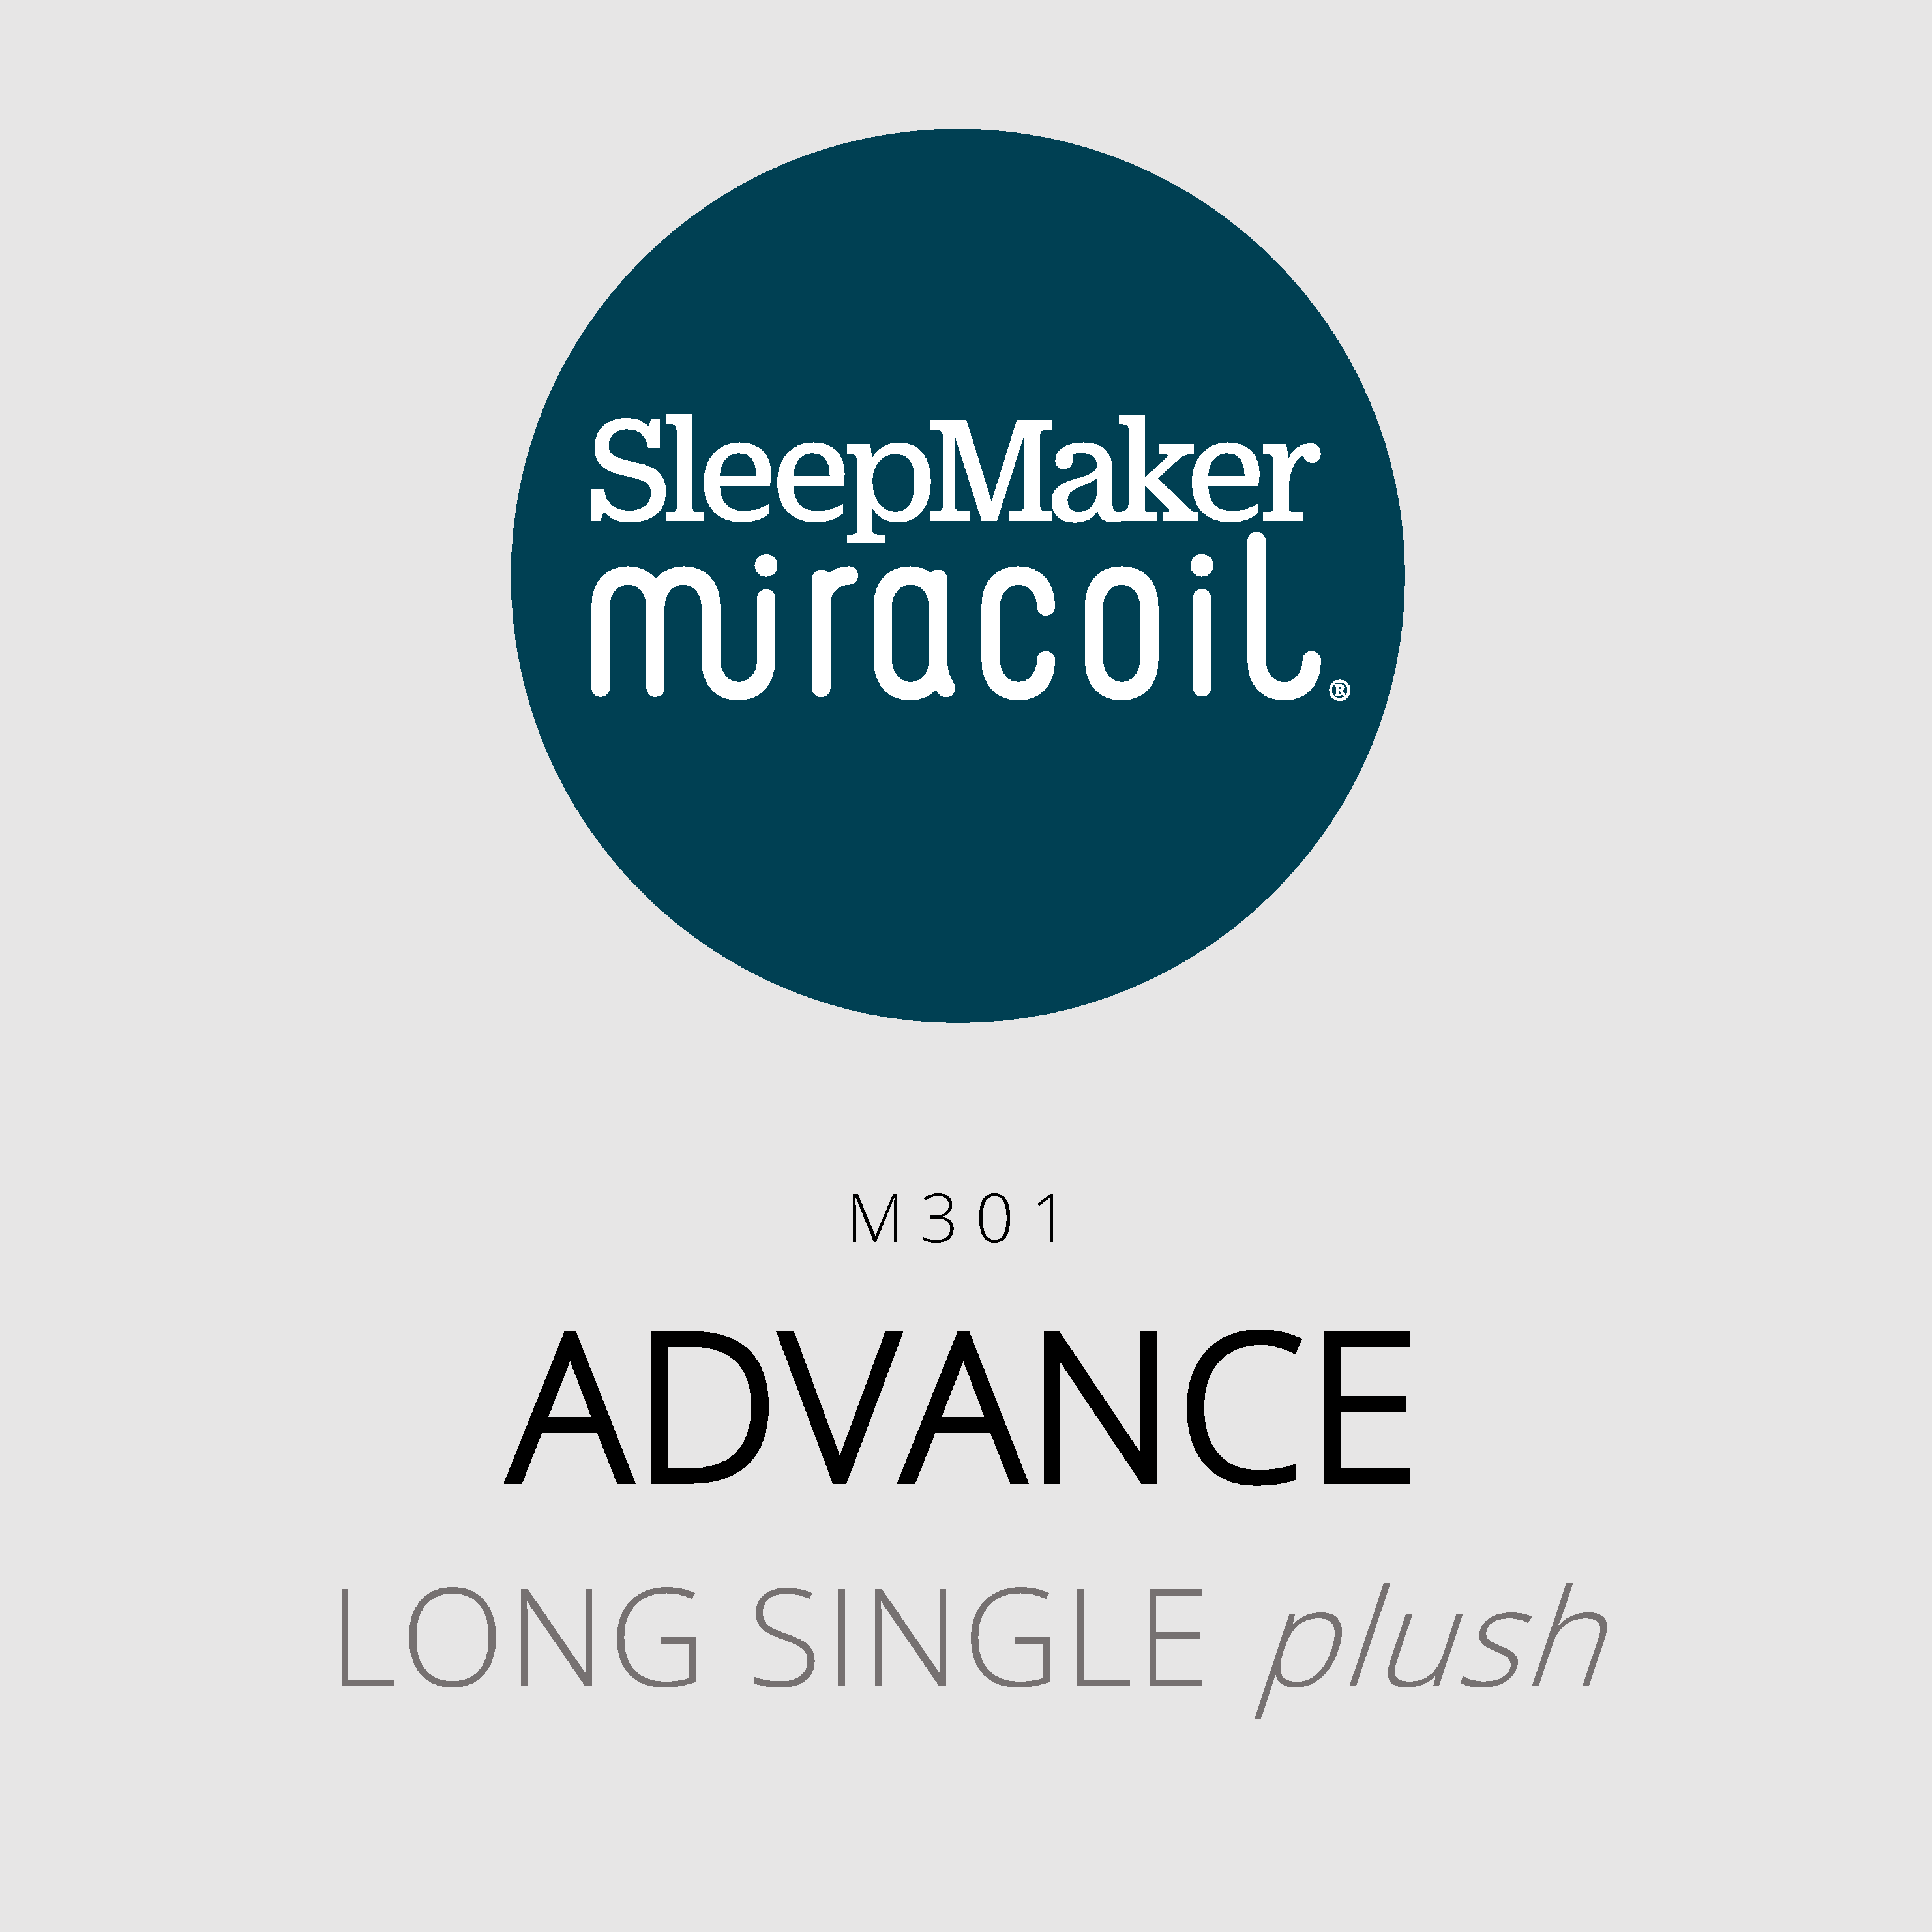 SleepMaker Miracoil – Advance – M301 – Long Single Plush Mattress